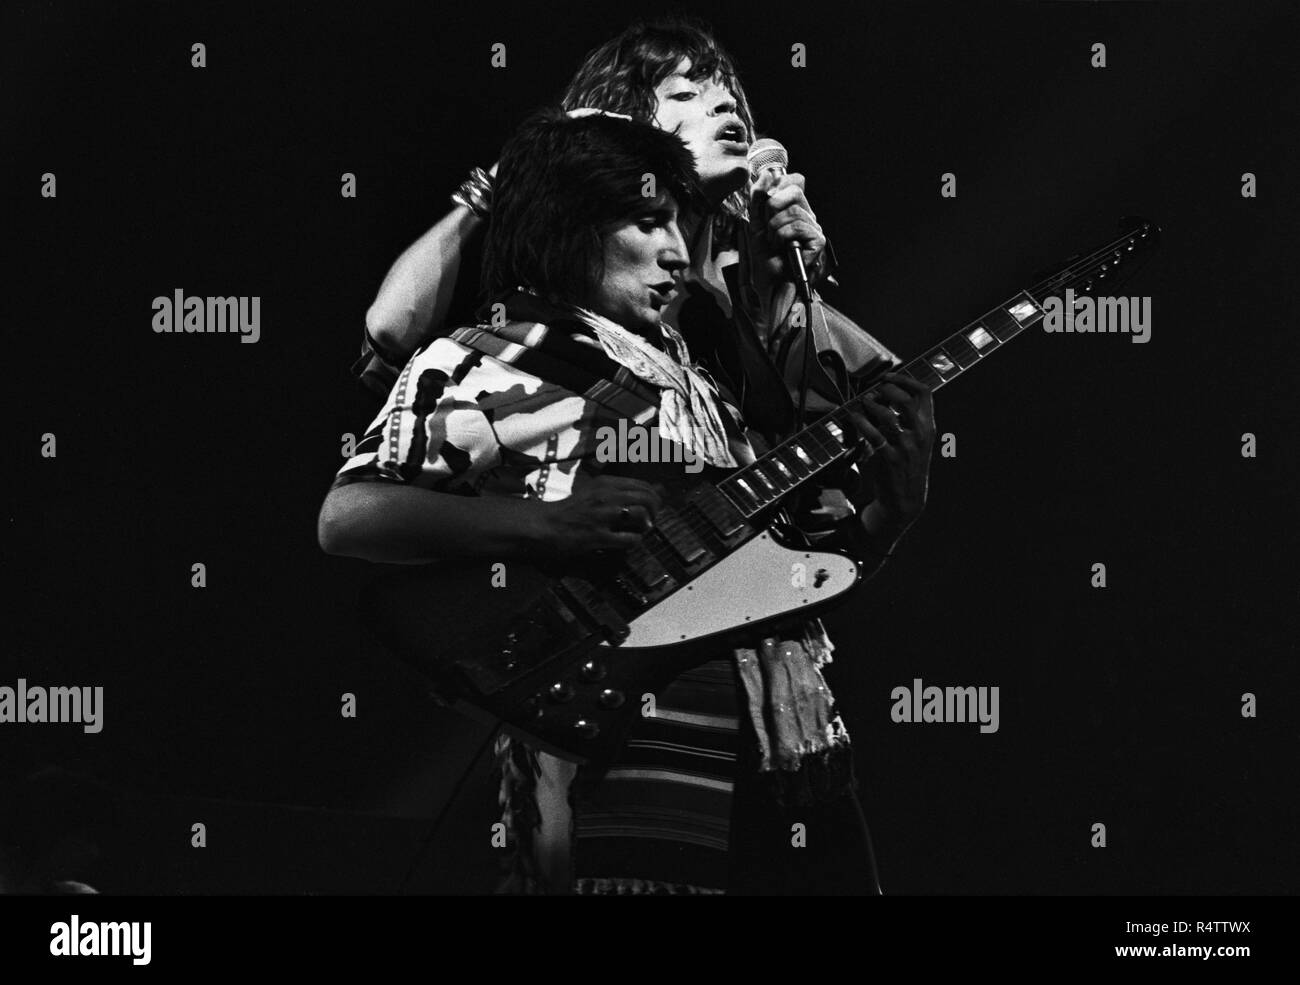 FRANKFURT, GERMANY: Mick Jagger, Ron Wood from The Rolling Stones perform live on stage at the Festhalle in Frankfurt, Germany on April 28 1976 as part of their European tour (Photo by Gijsbert Hanekroot) *** Local Caption *** Rolling Stones, Mick Jagger, Ron Wood Stock Photo